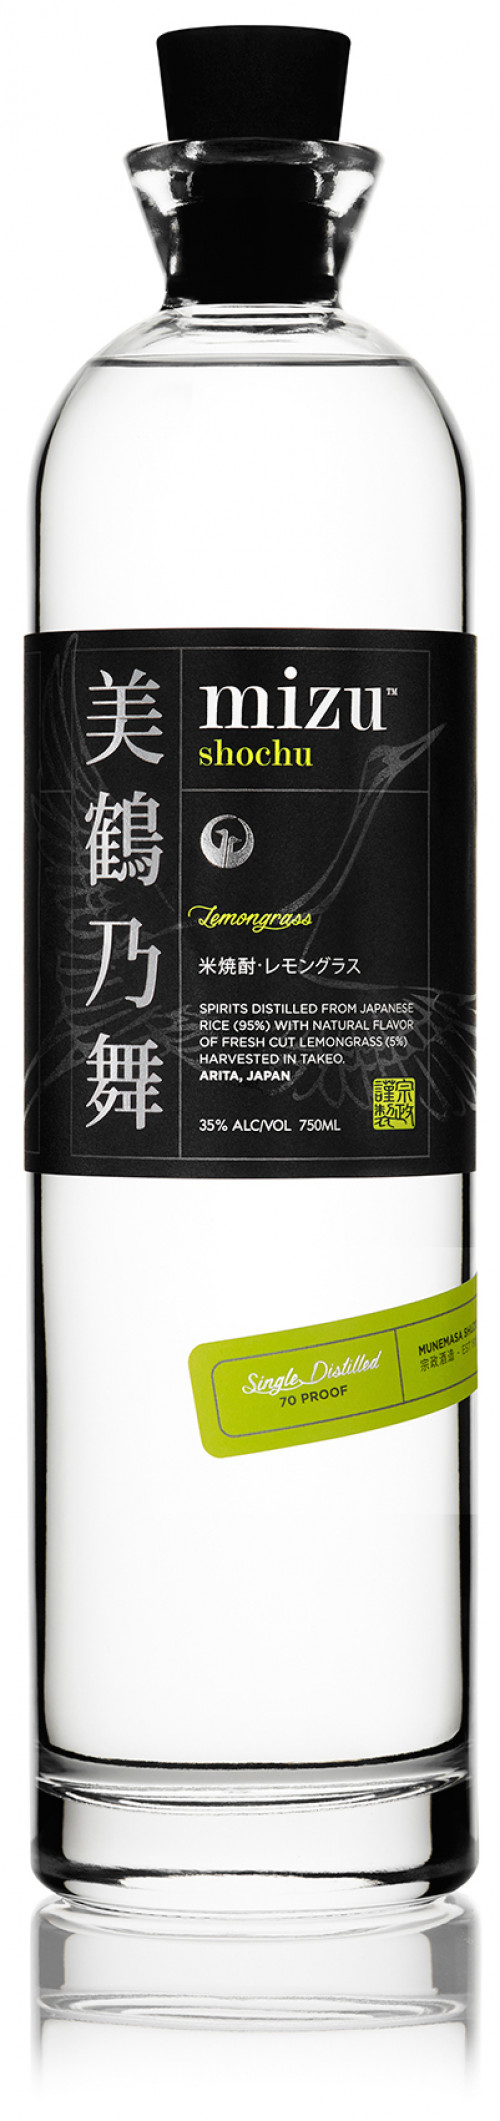 Mizu Shochu Lemongrass 750Ml